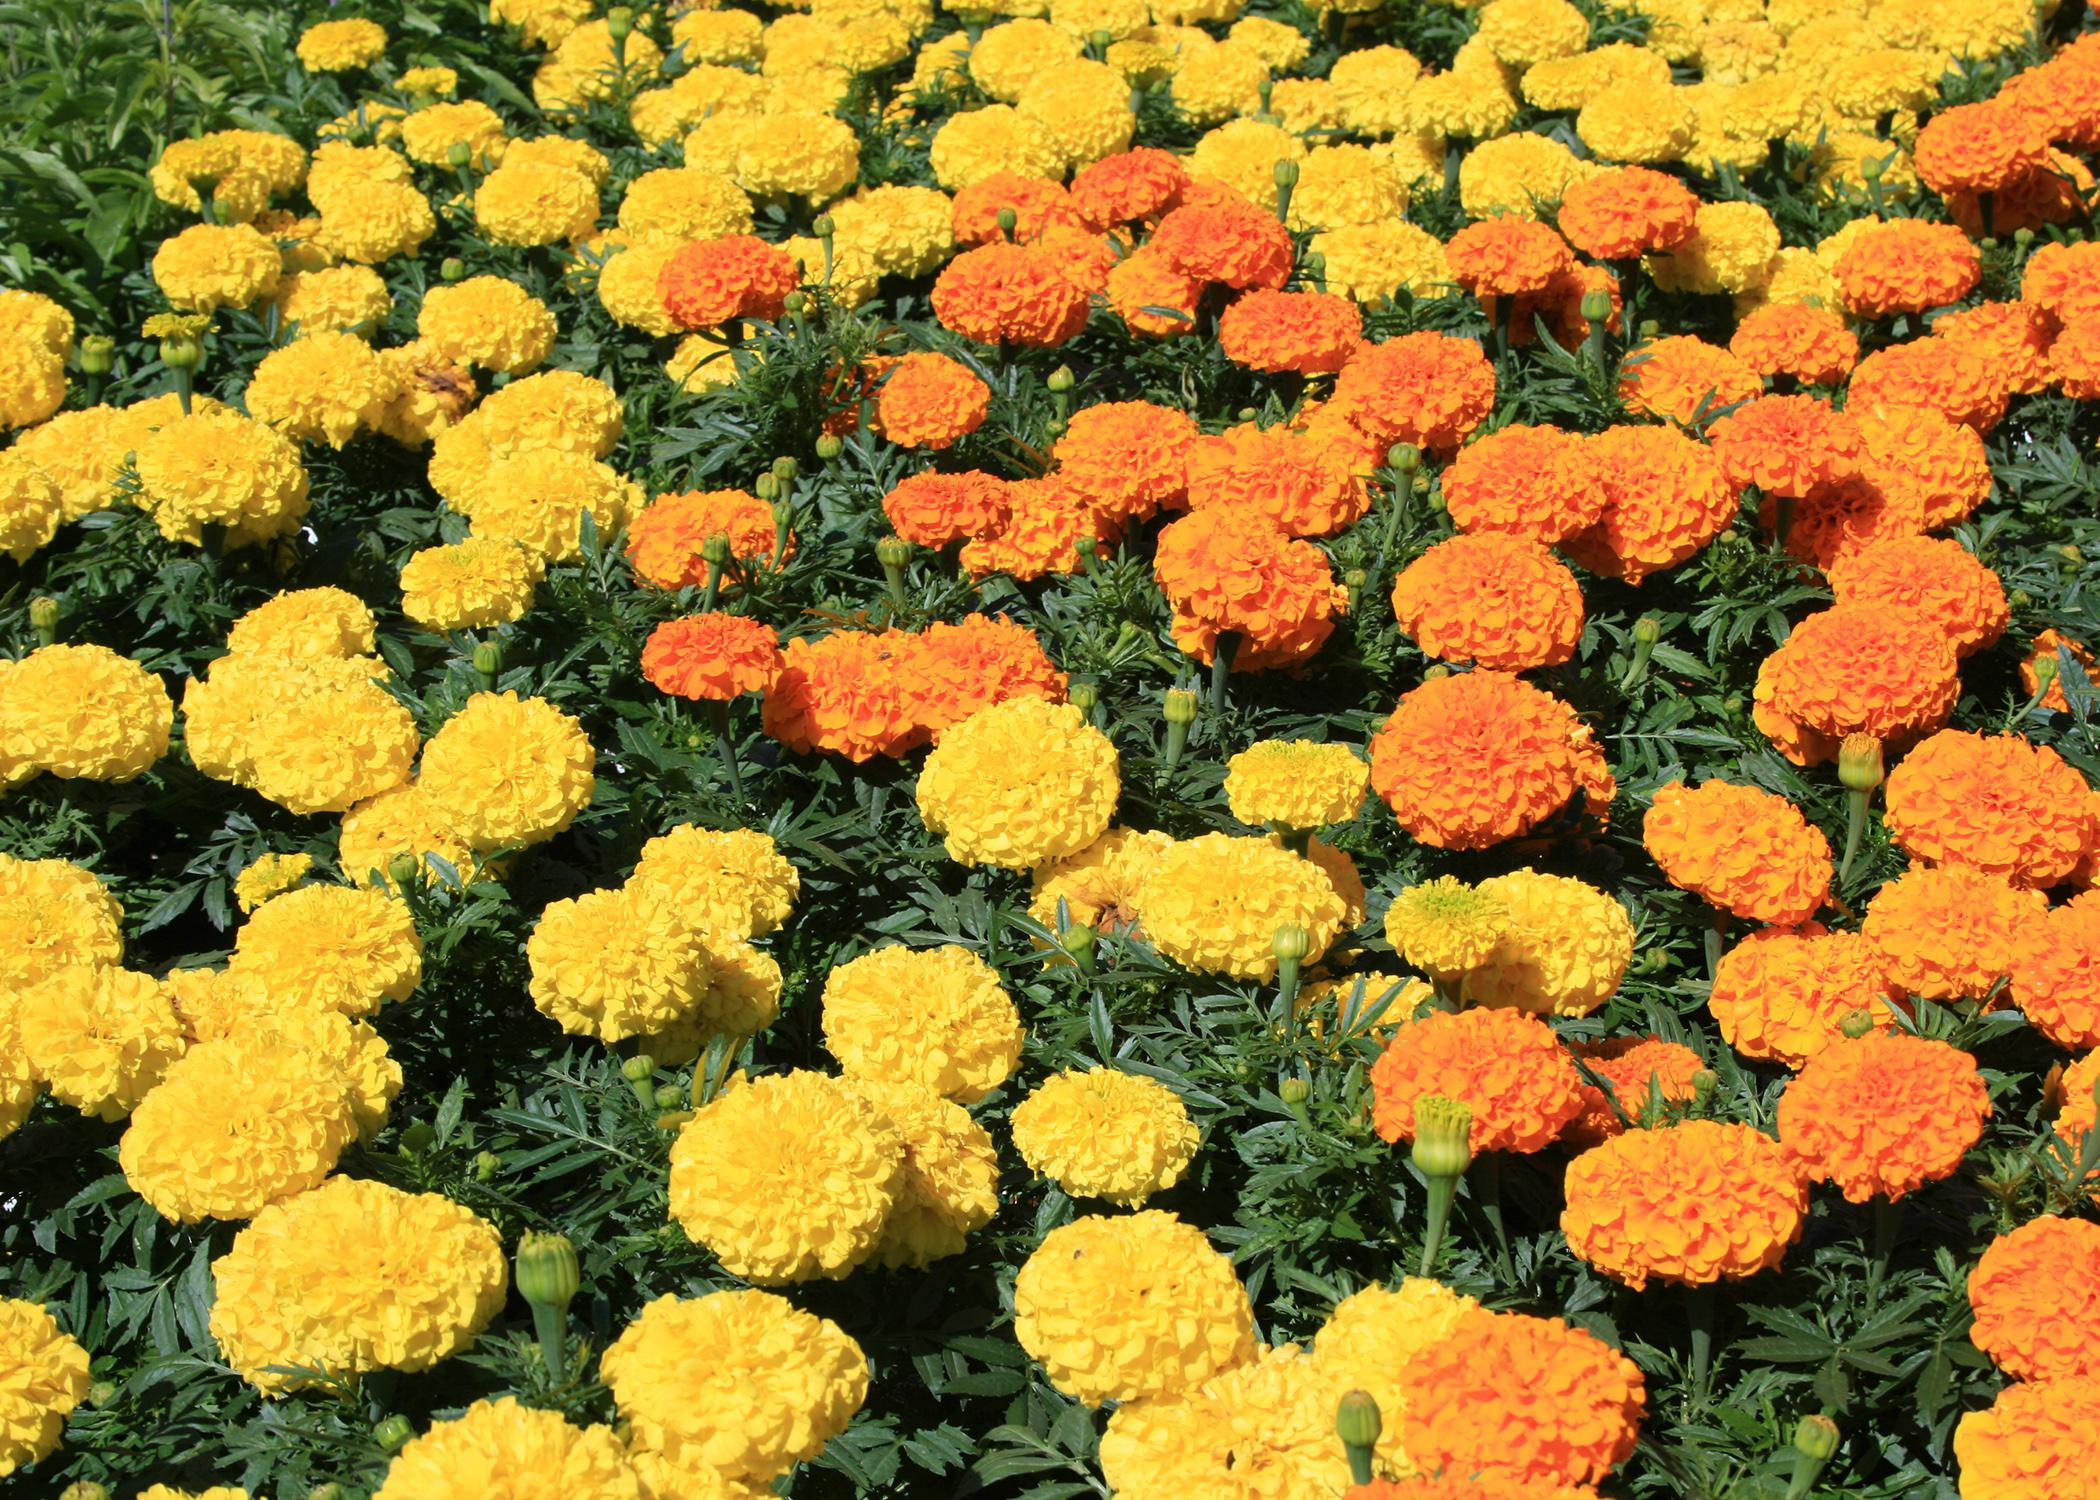 Fall is an ideal time to plant marigolds. Varieties such as these Antiqua Orange and Yellow marigolds will bloom from now until first frost. (Photo by MSU Extension Service/Gary Bachman)